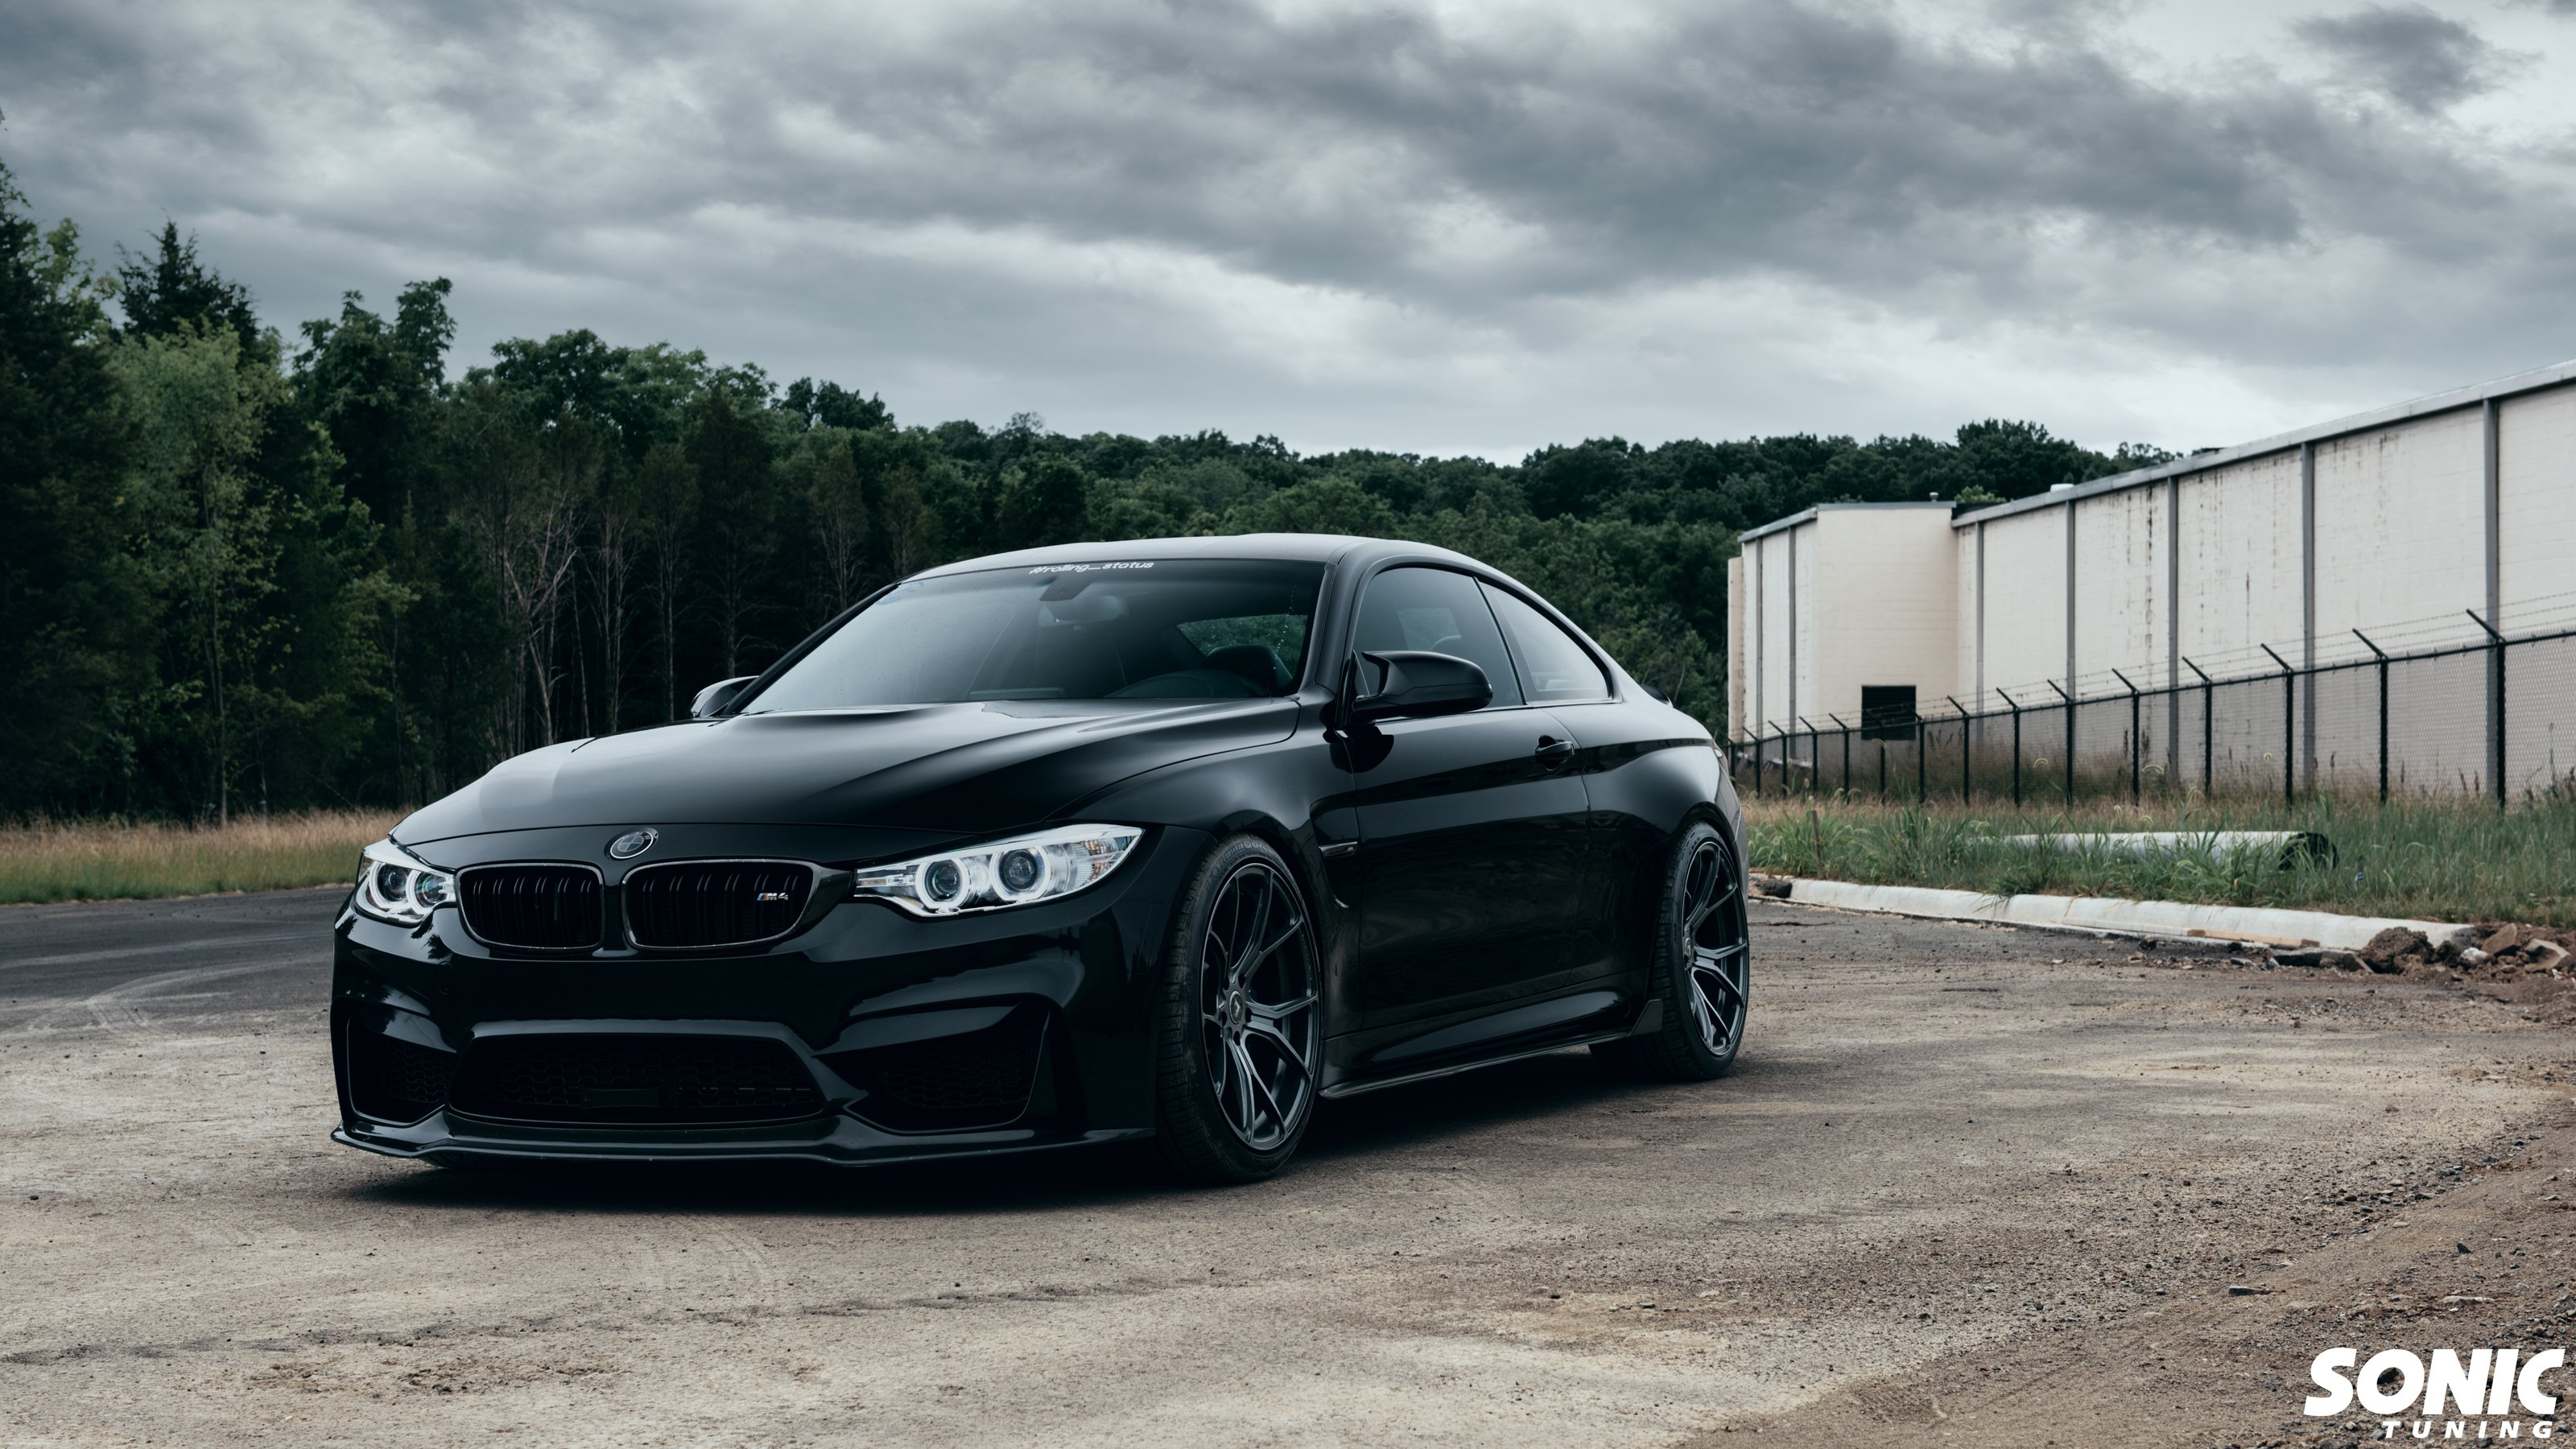 Matte Black Bmw >> Ravishing Yet Sinister Black Bmw 4 Series Shod In Matte Black Custom